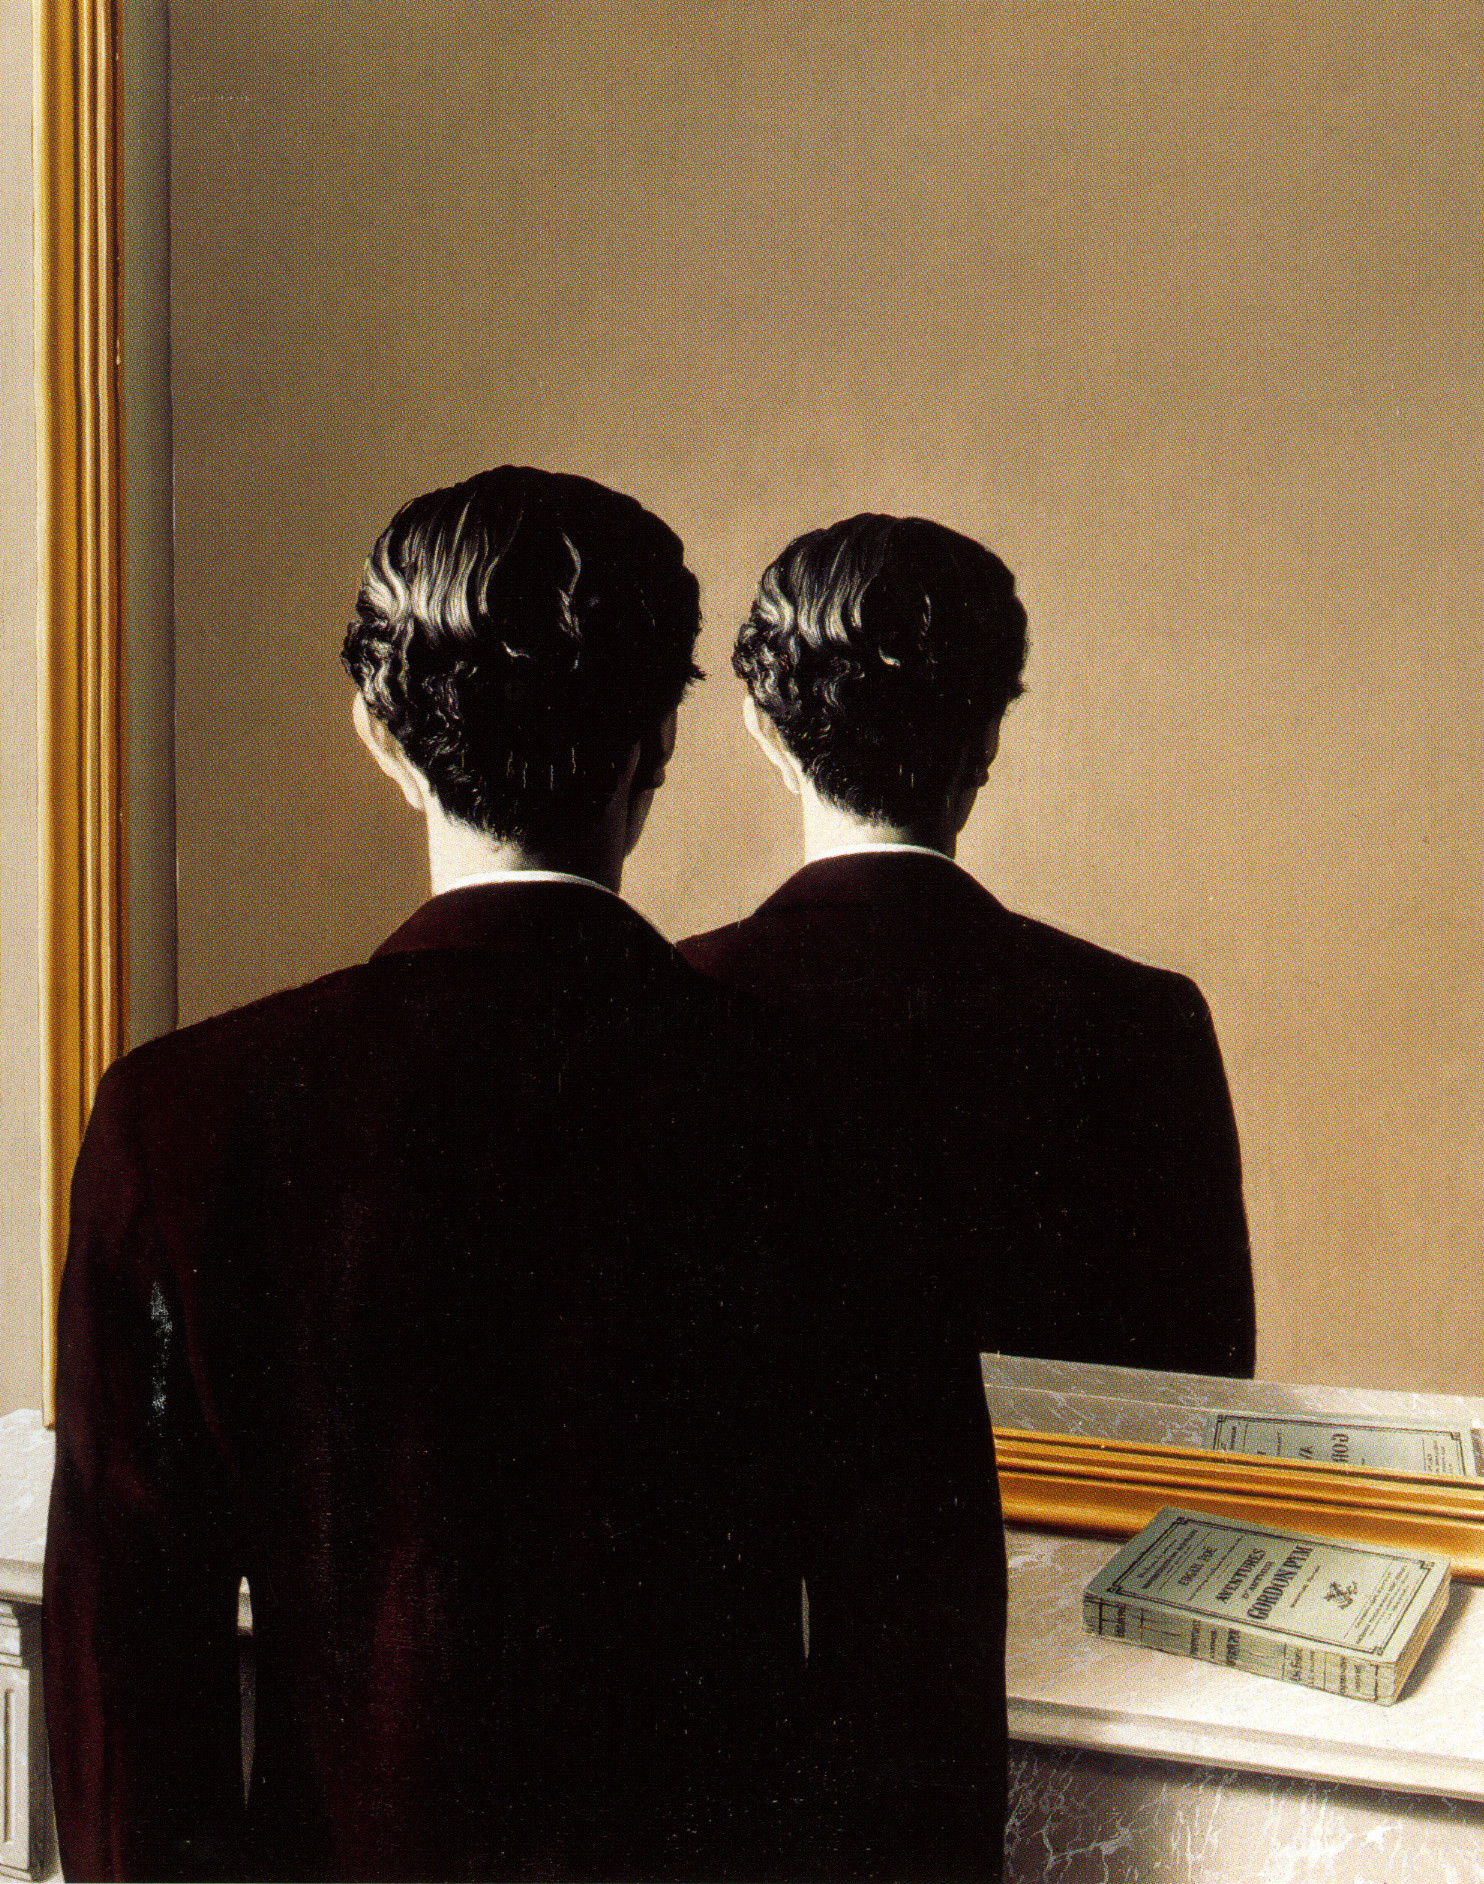 René Magritte. _La Reproduction interdite (Not to Be Reproduced)._ Brussels, 1937